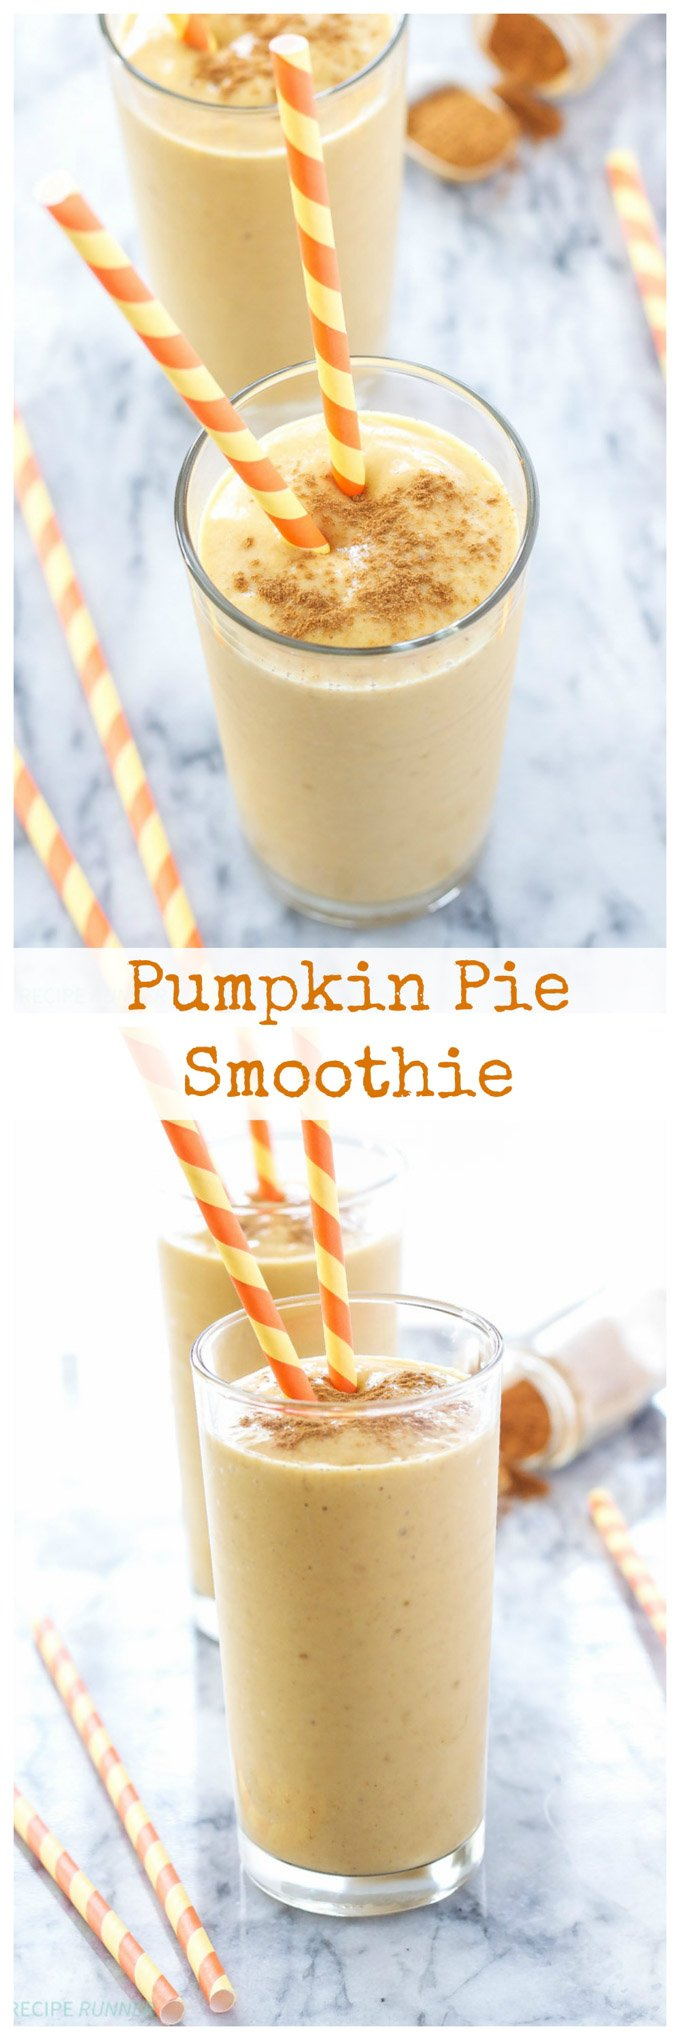 Pumpkin Pie Smoothie | Who doesn't want pumpkin pie for breakfast? Now you can have all the flavors in this healthy smoothie!